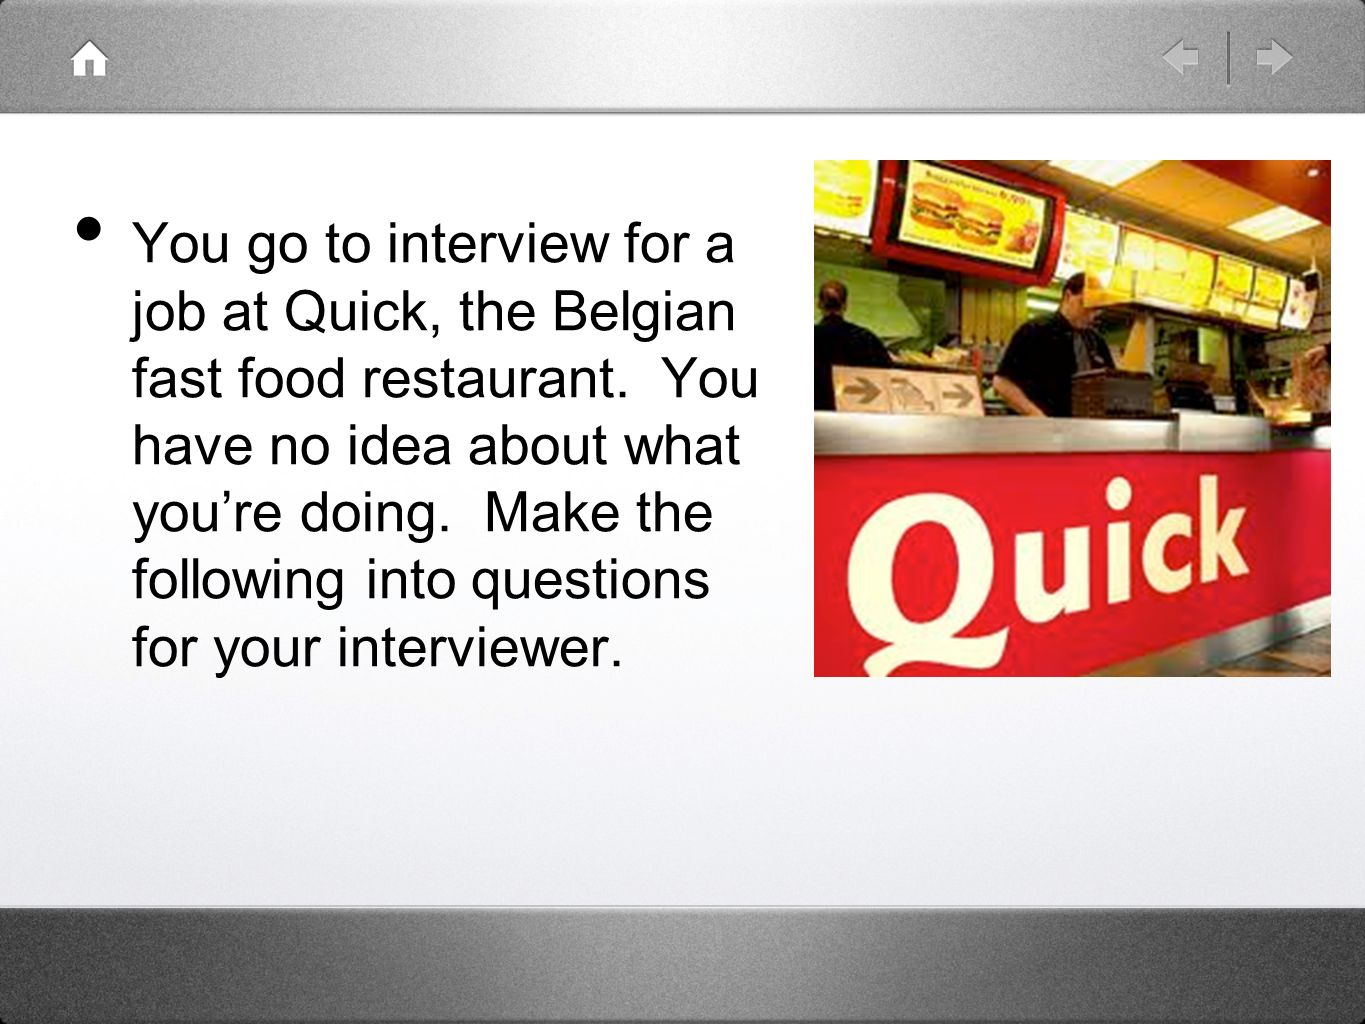 You go to interview for a job at Quick, the Belgian fast food restaurant.